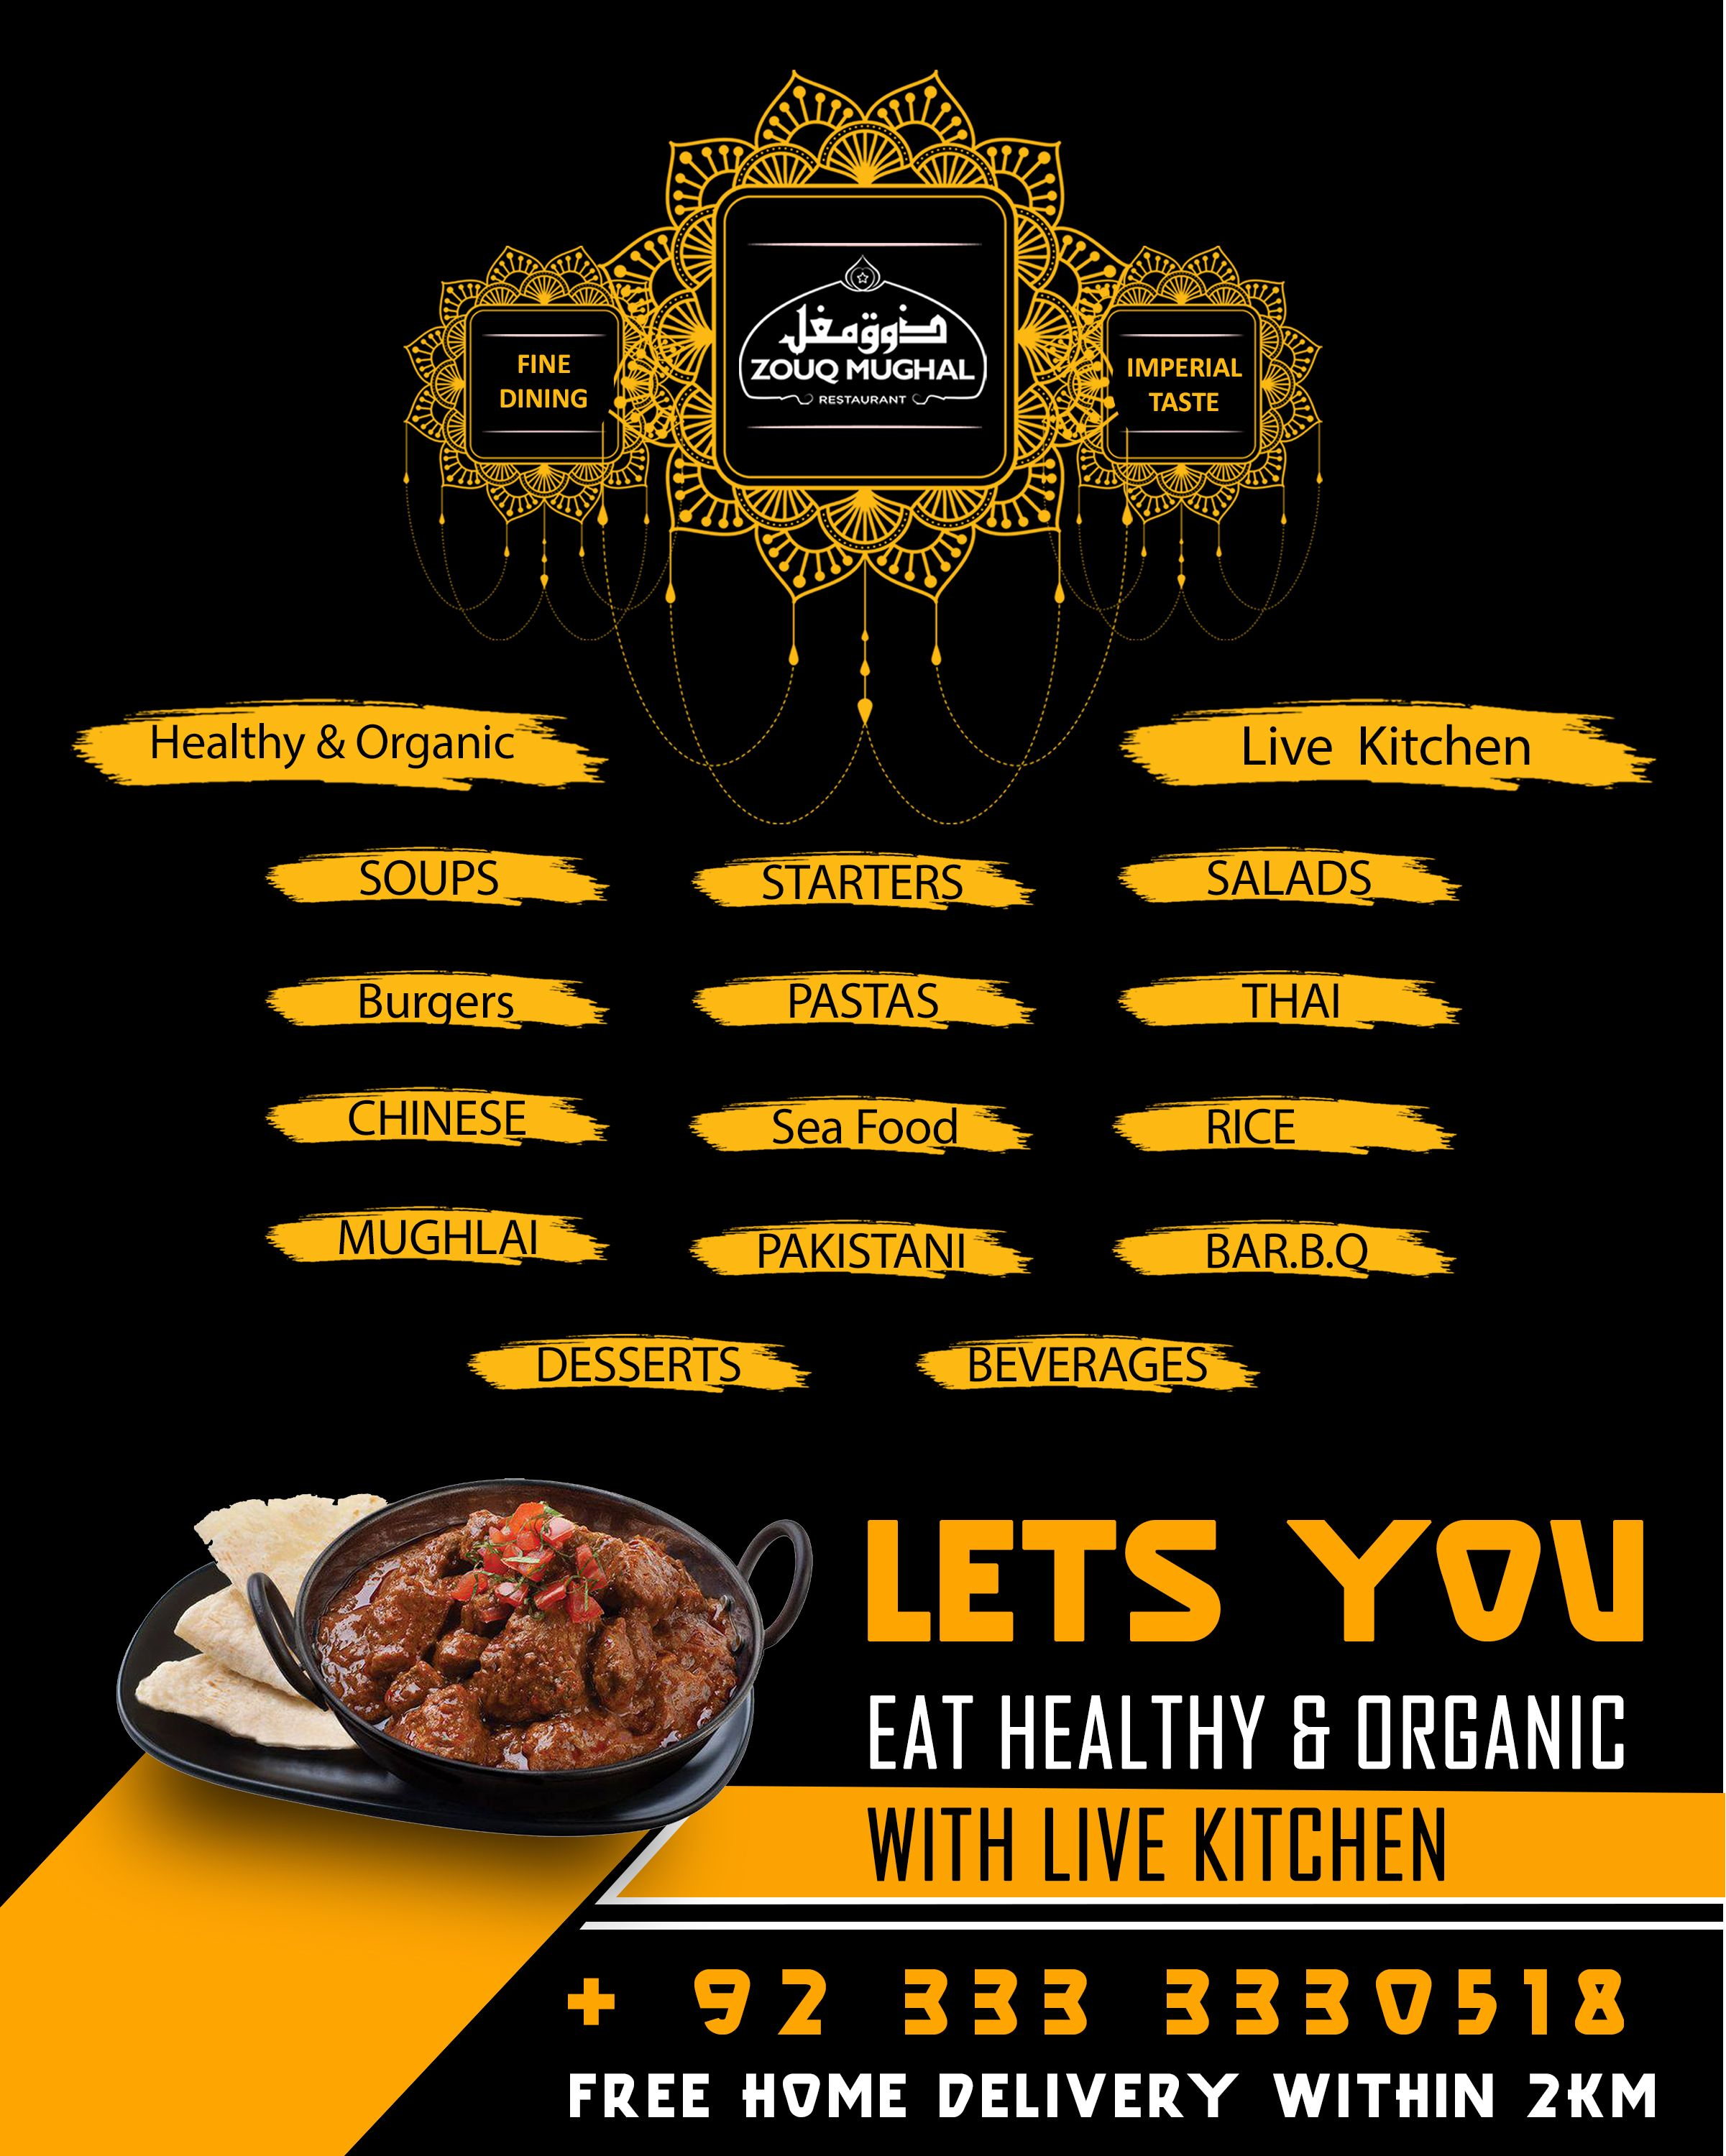 Zouq Mughal Restaurant Provides Healthy Organic Food With Live Kitchen Organic Recipes Healthy Organic Recipes Healthy Organic